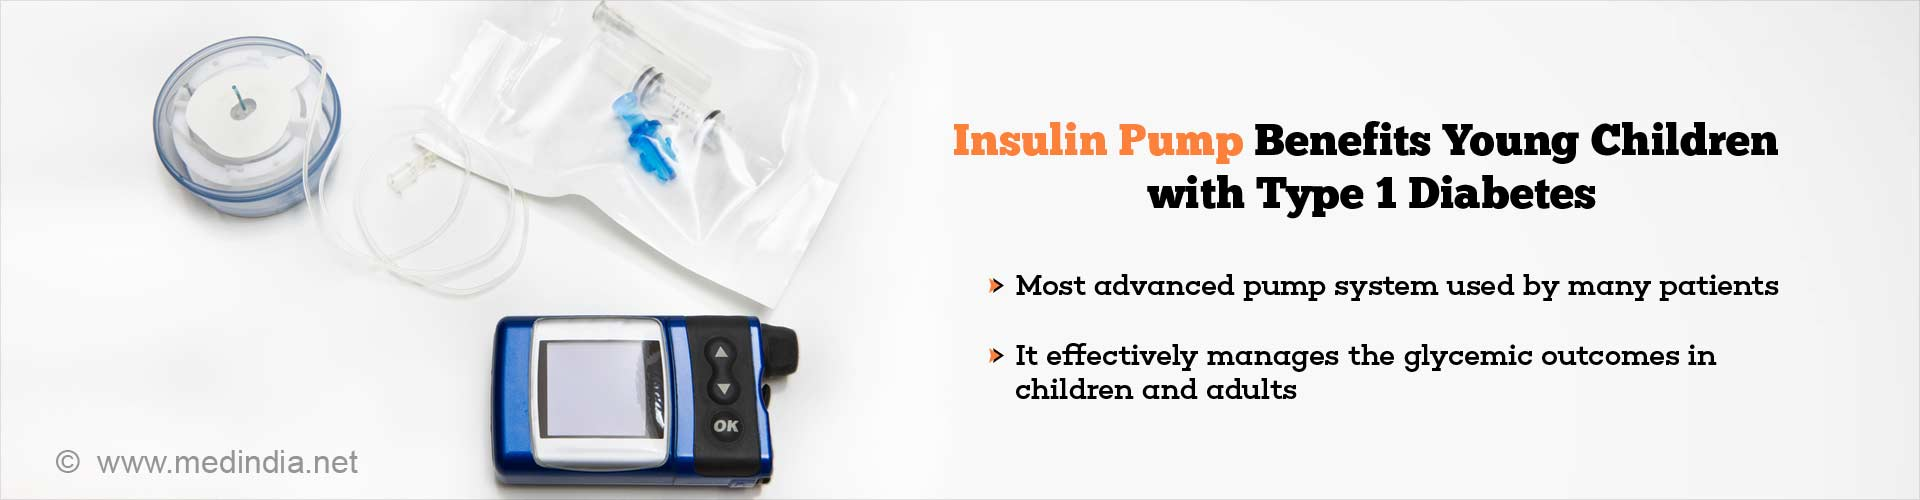 Benefits of Insulin Pump in Children With Type 1 Diabetes